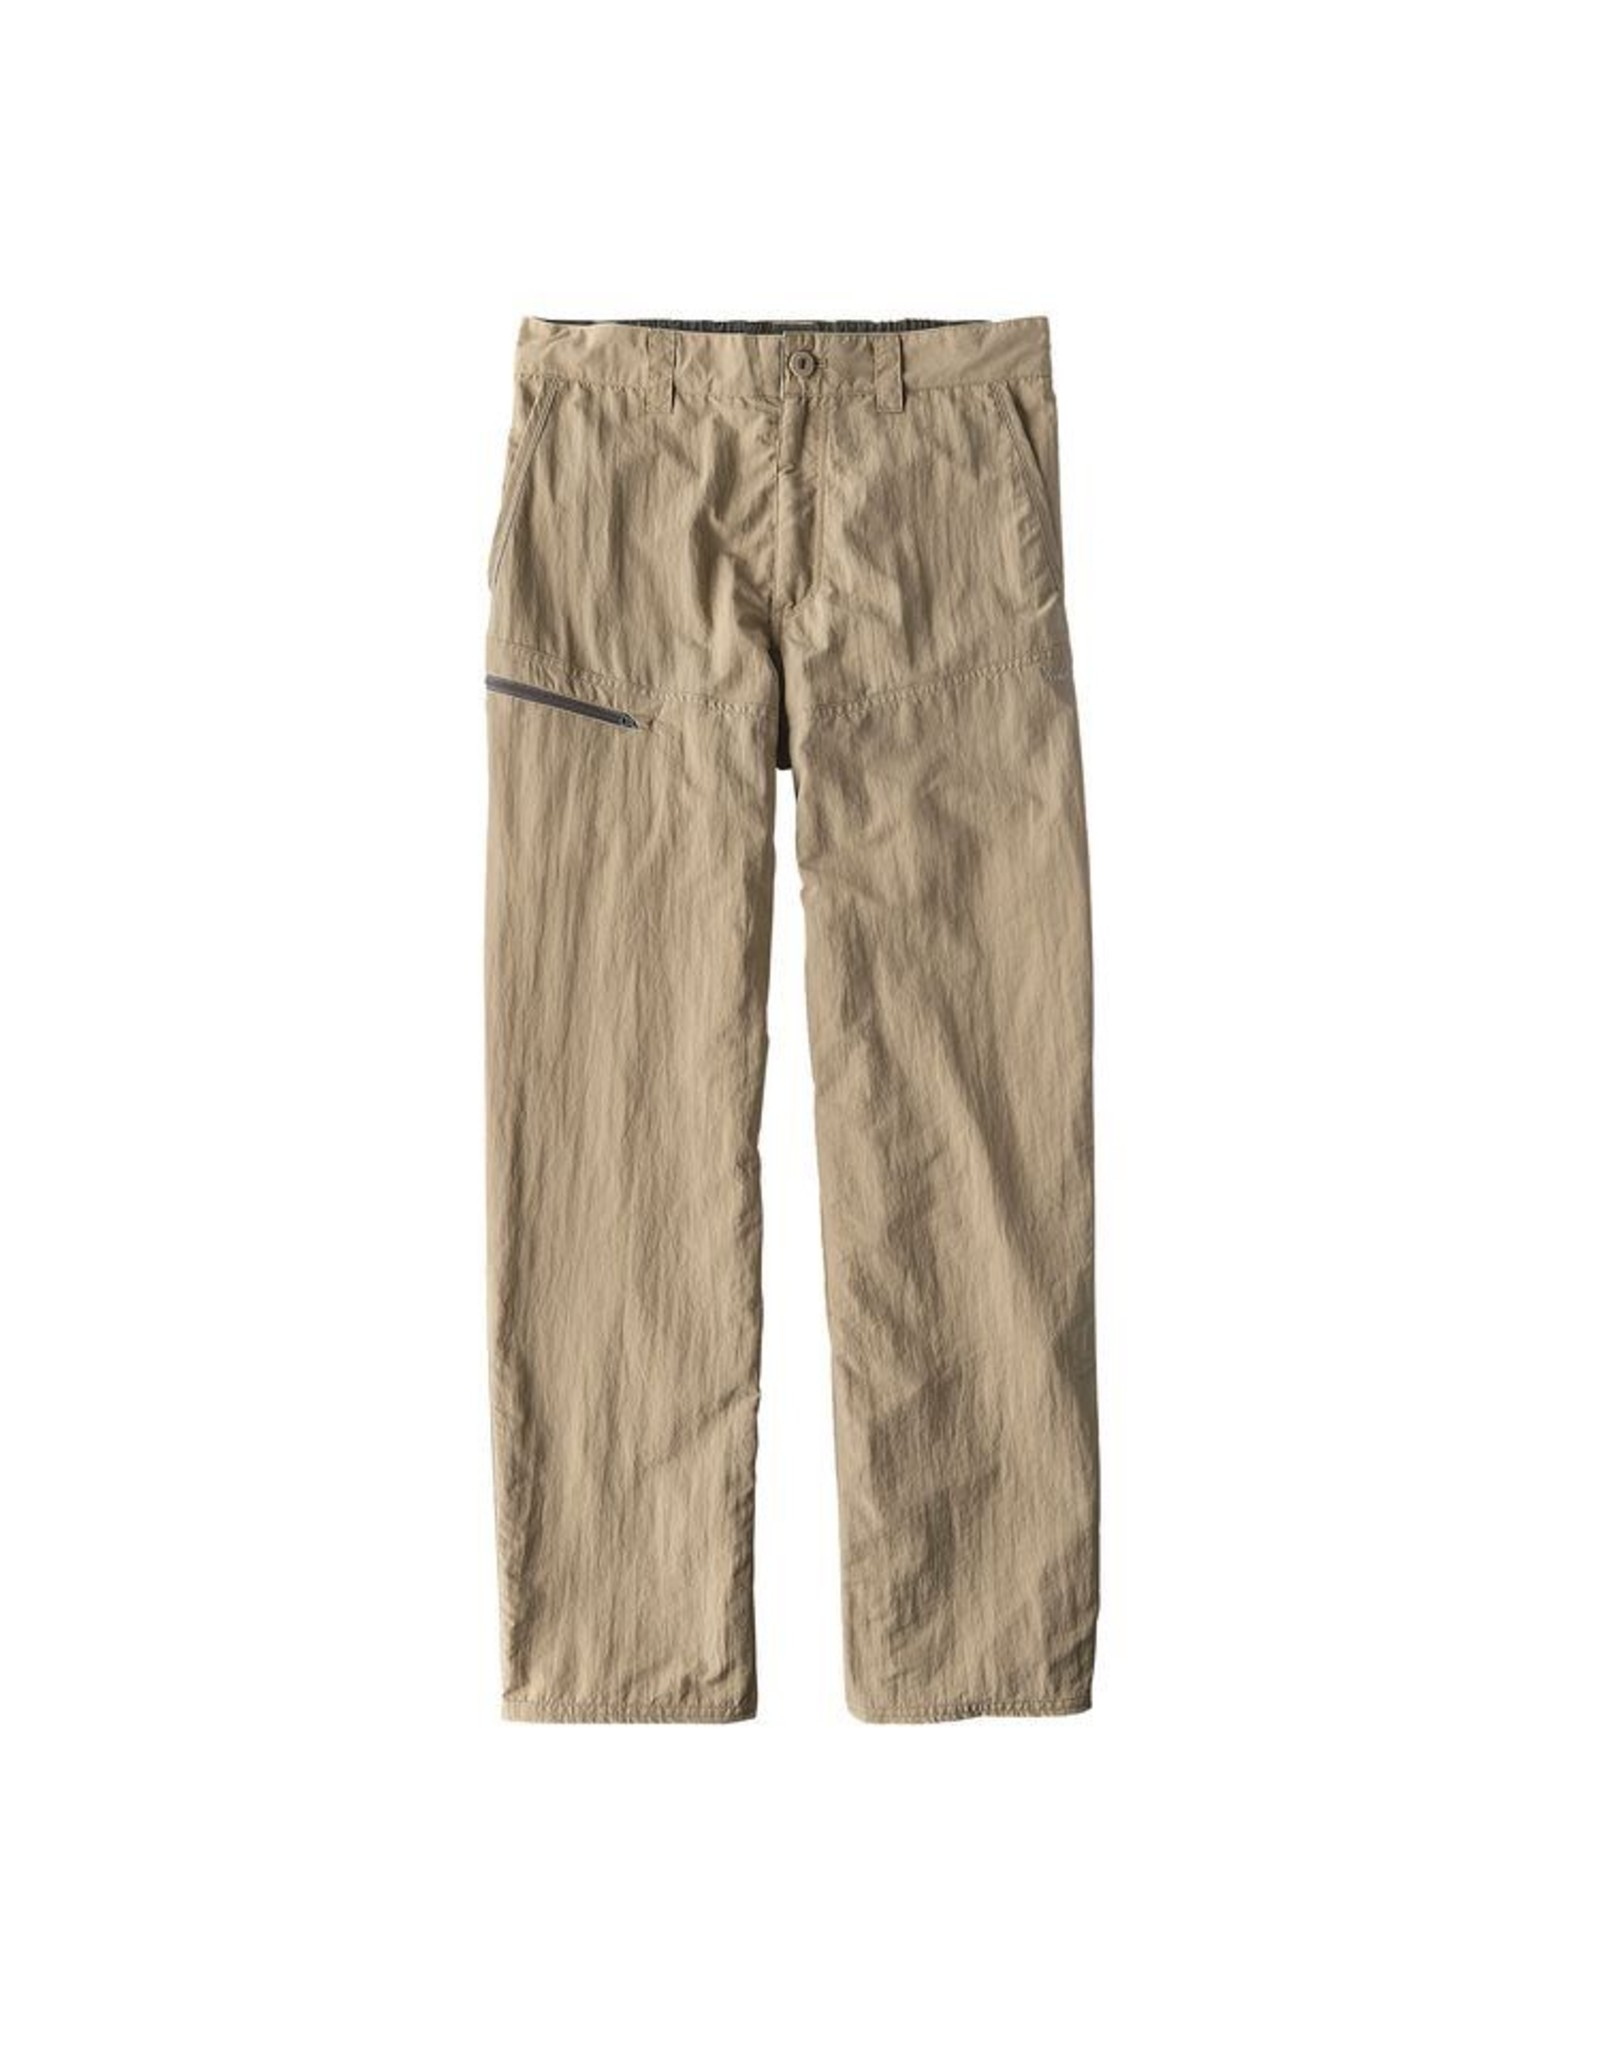 Light, comfortable and quick to dry, the Sandy Cay Pants offer 50+ UPF sun protection and the versatility needed for day-after-day of fishing and travel